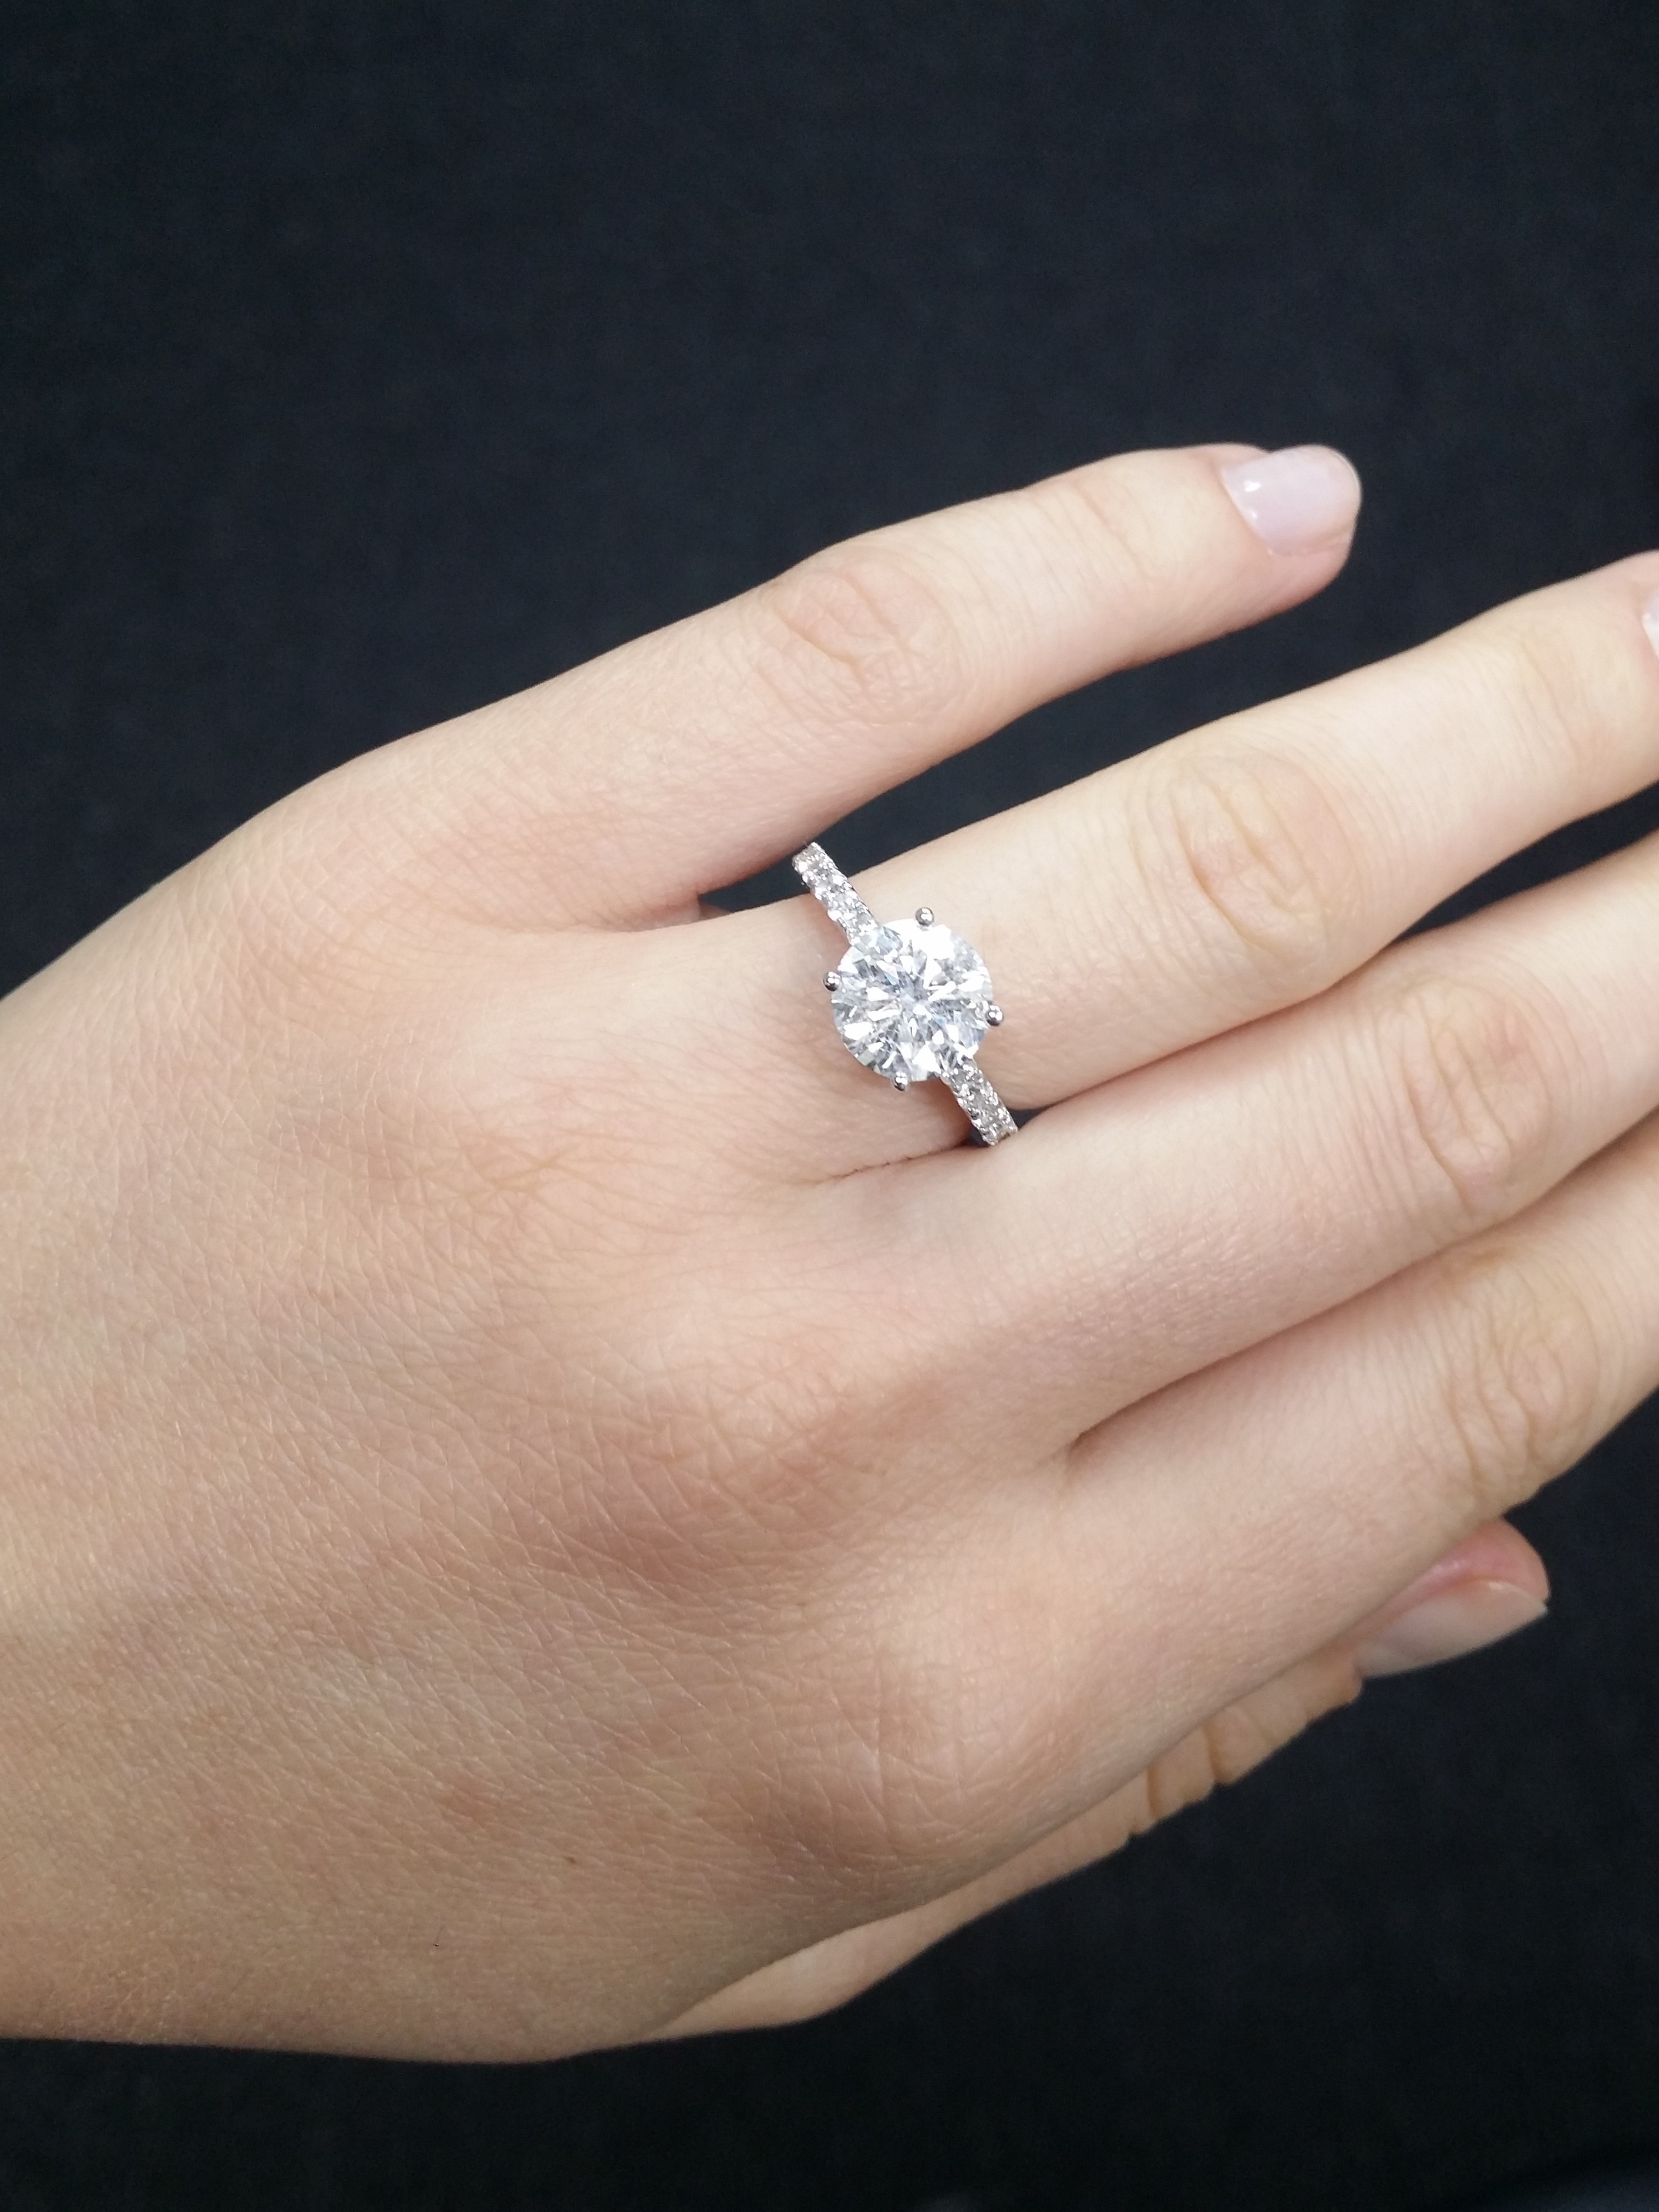 Gorgeous and classic round cut diamond ring